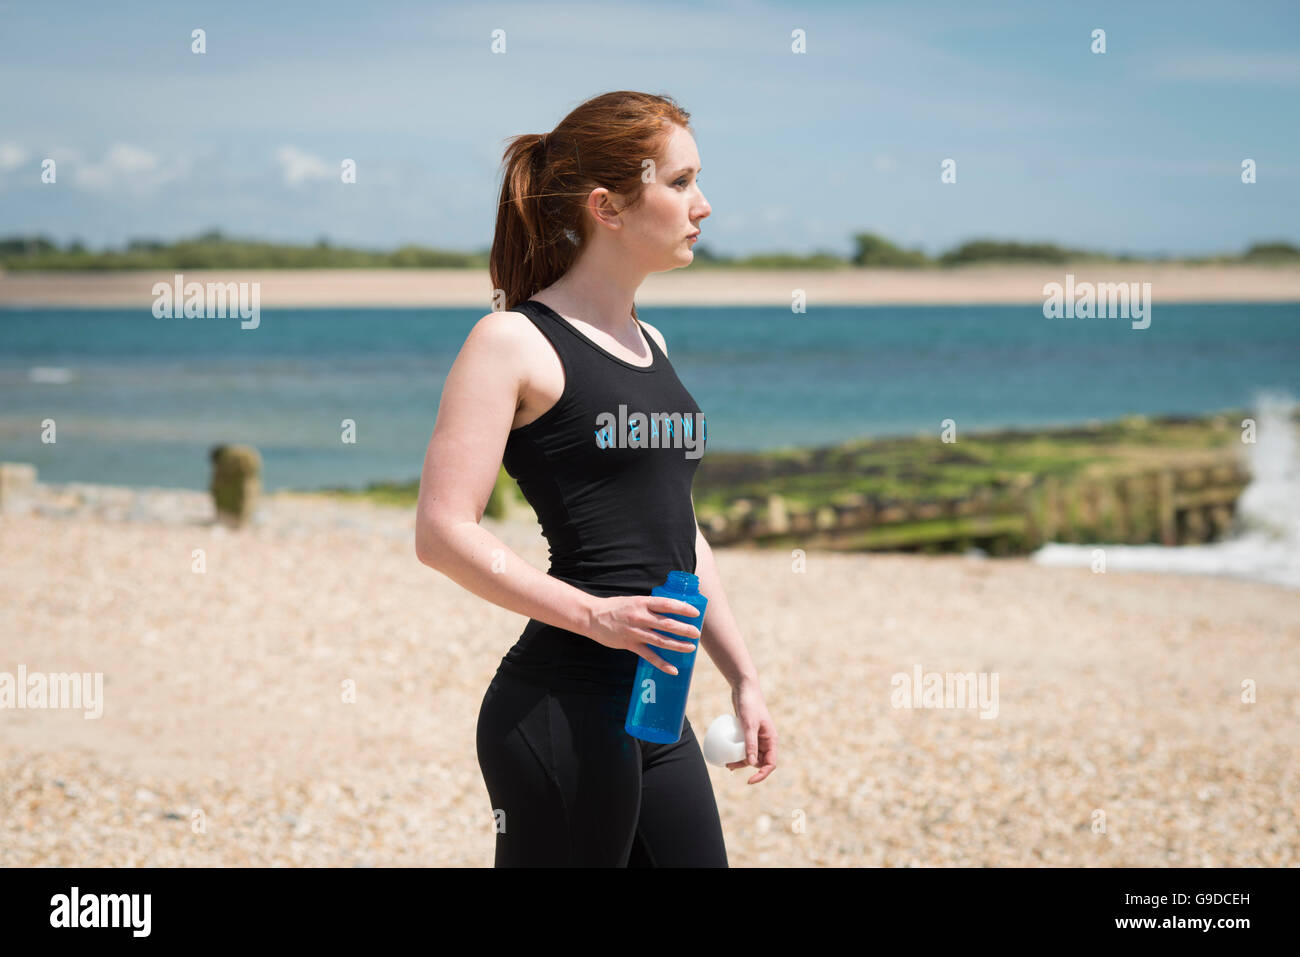 woman wearing exercise clothing carrying a water bottle - Stock Image